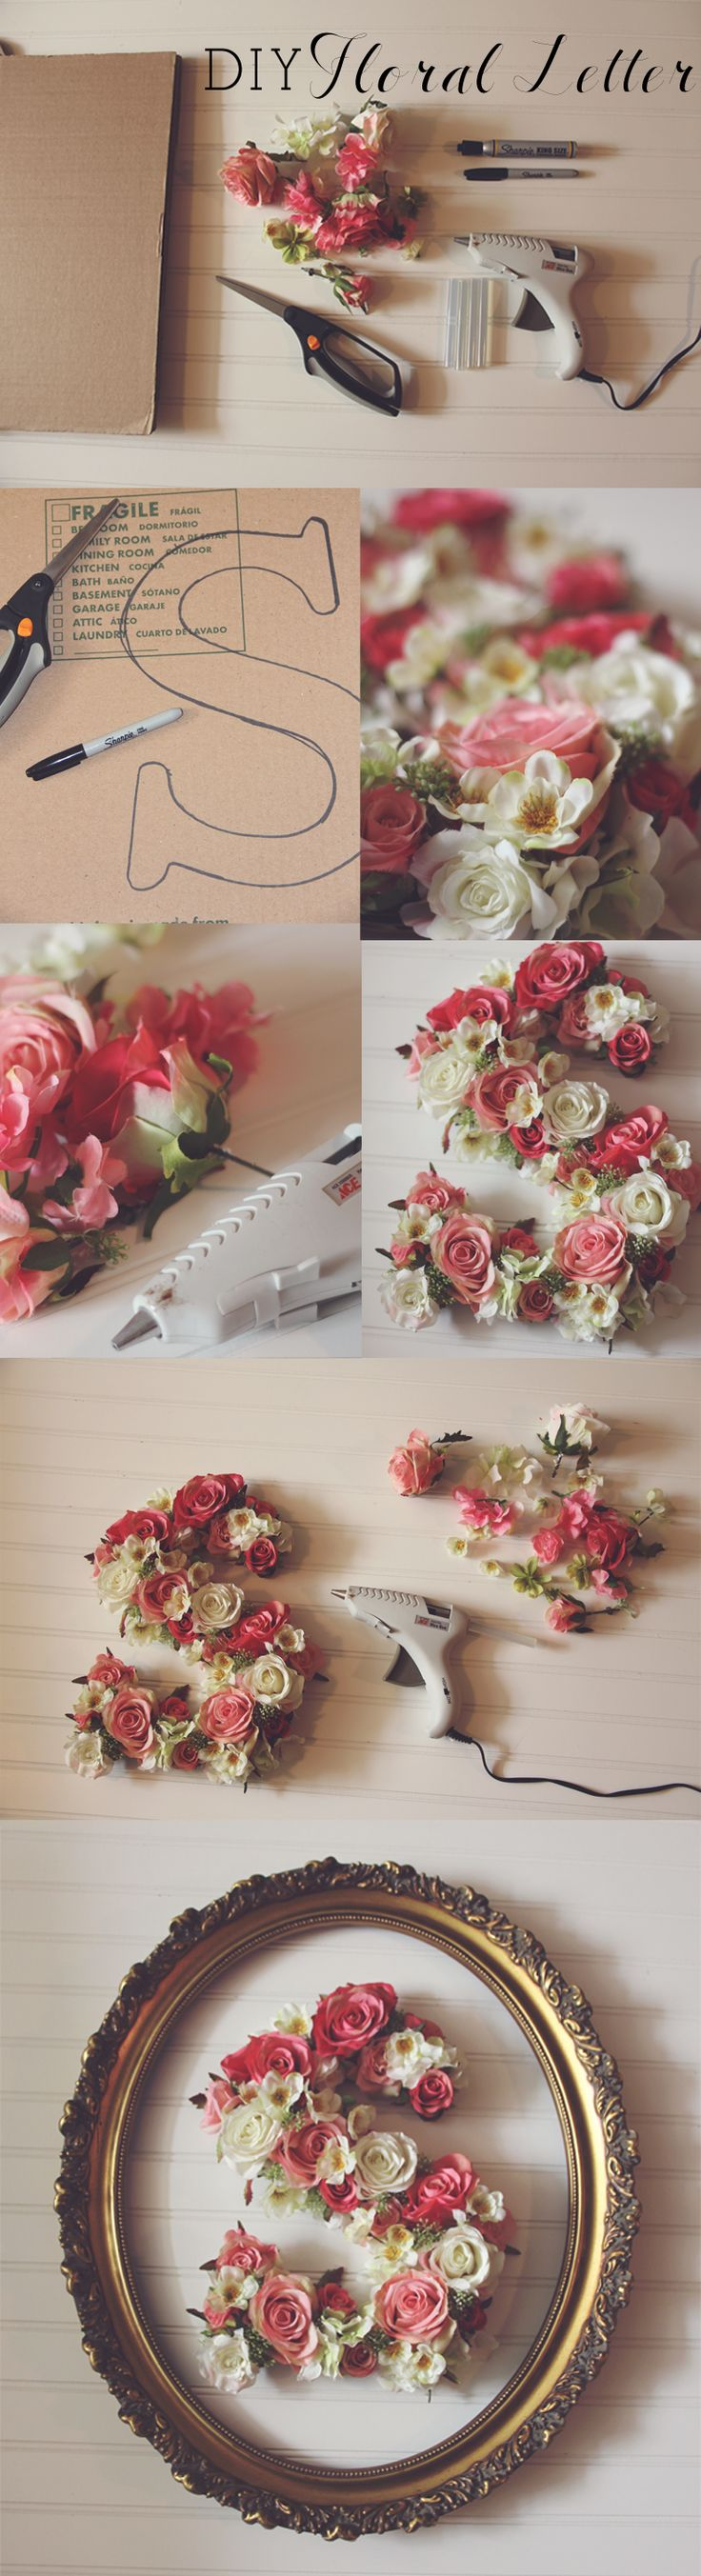 DIY Floral Letter from {the Mrs & Momma bird} Floral letter, DIY, Nursery  http://themrsandmommabird.blogspot.com/